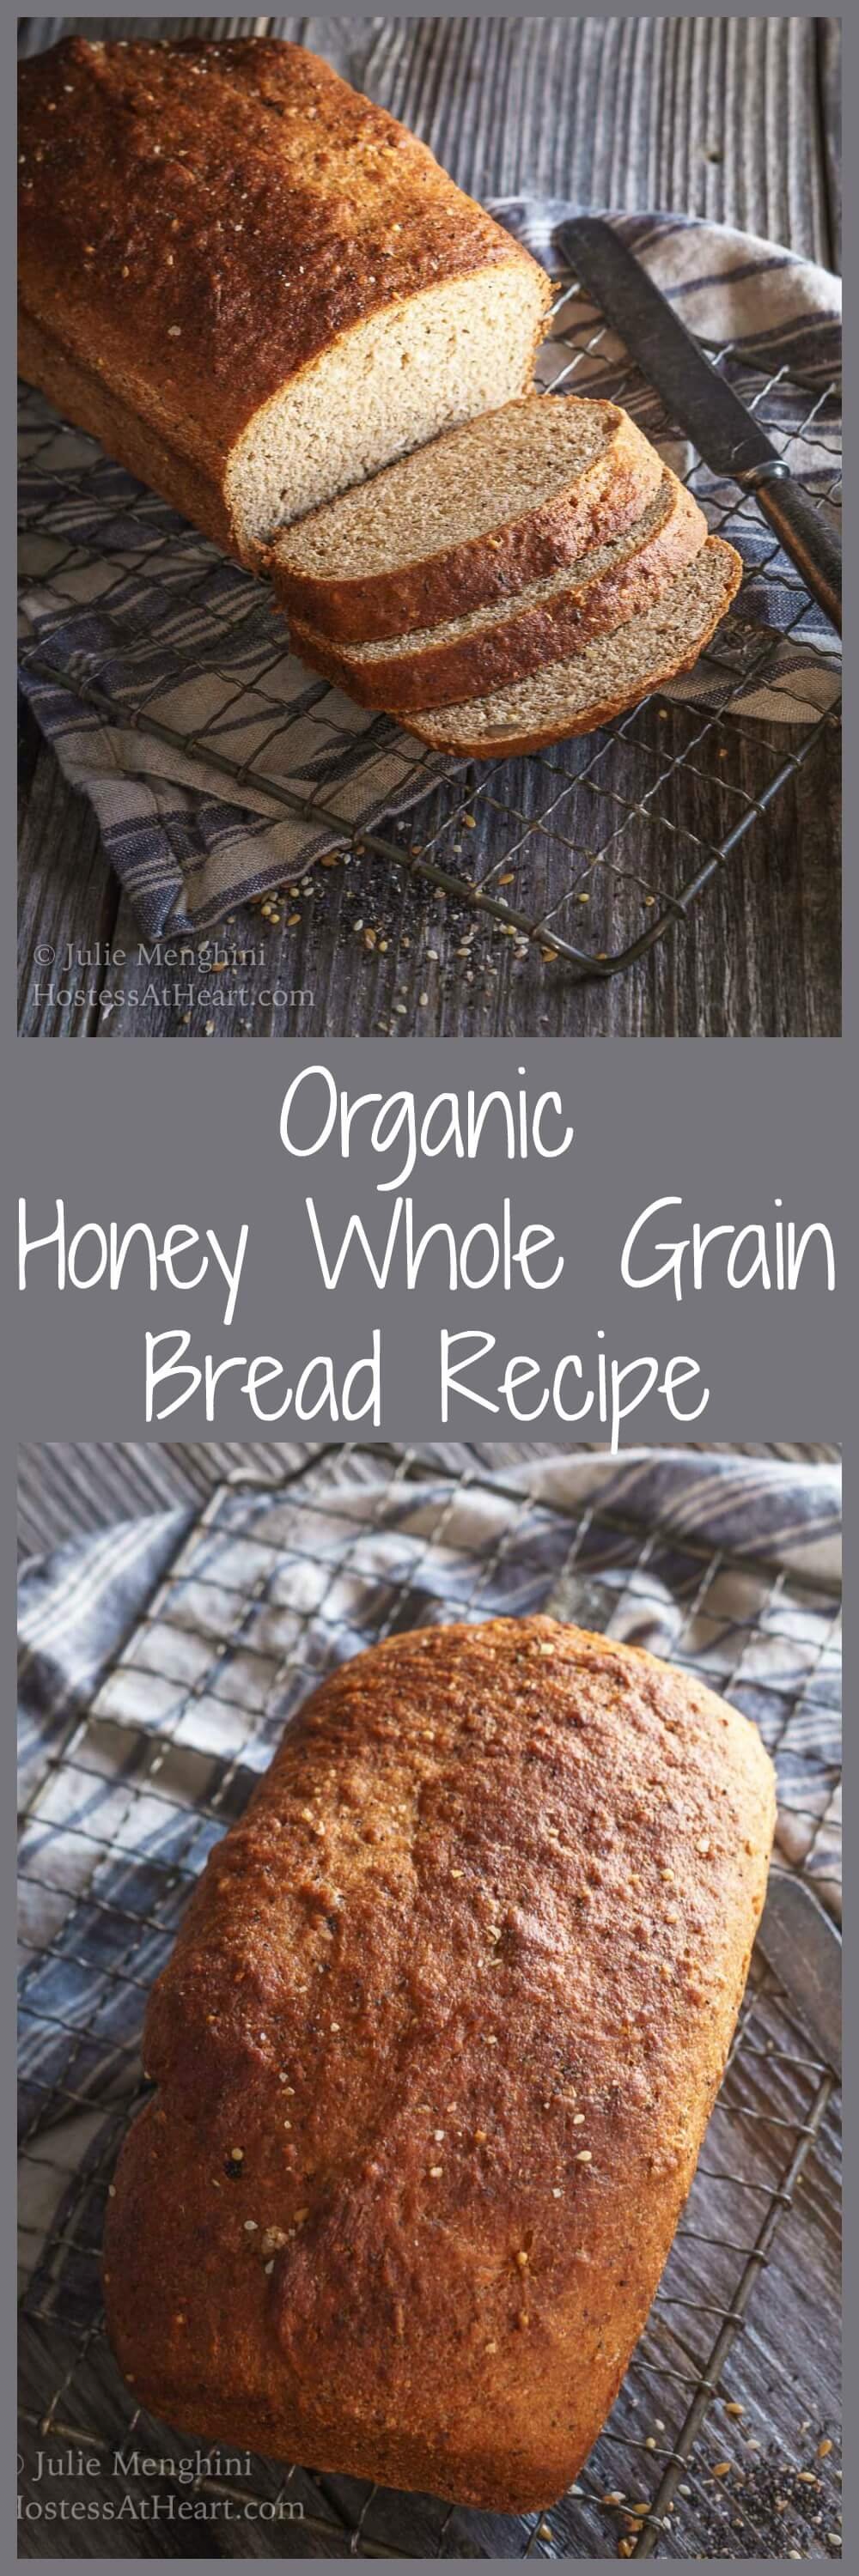 This Organic Honey Whole Grain Bread Recipe makes a delicious hearty loaf that is perfect with a hot bowl of soup. #homemadebread #bread #yeastbread | Whole Grain Bread | Multigrain Bread | Homemade Bread